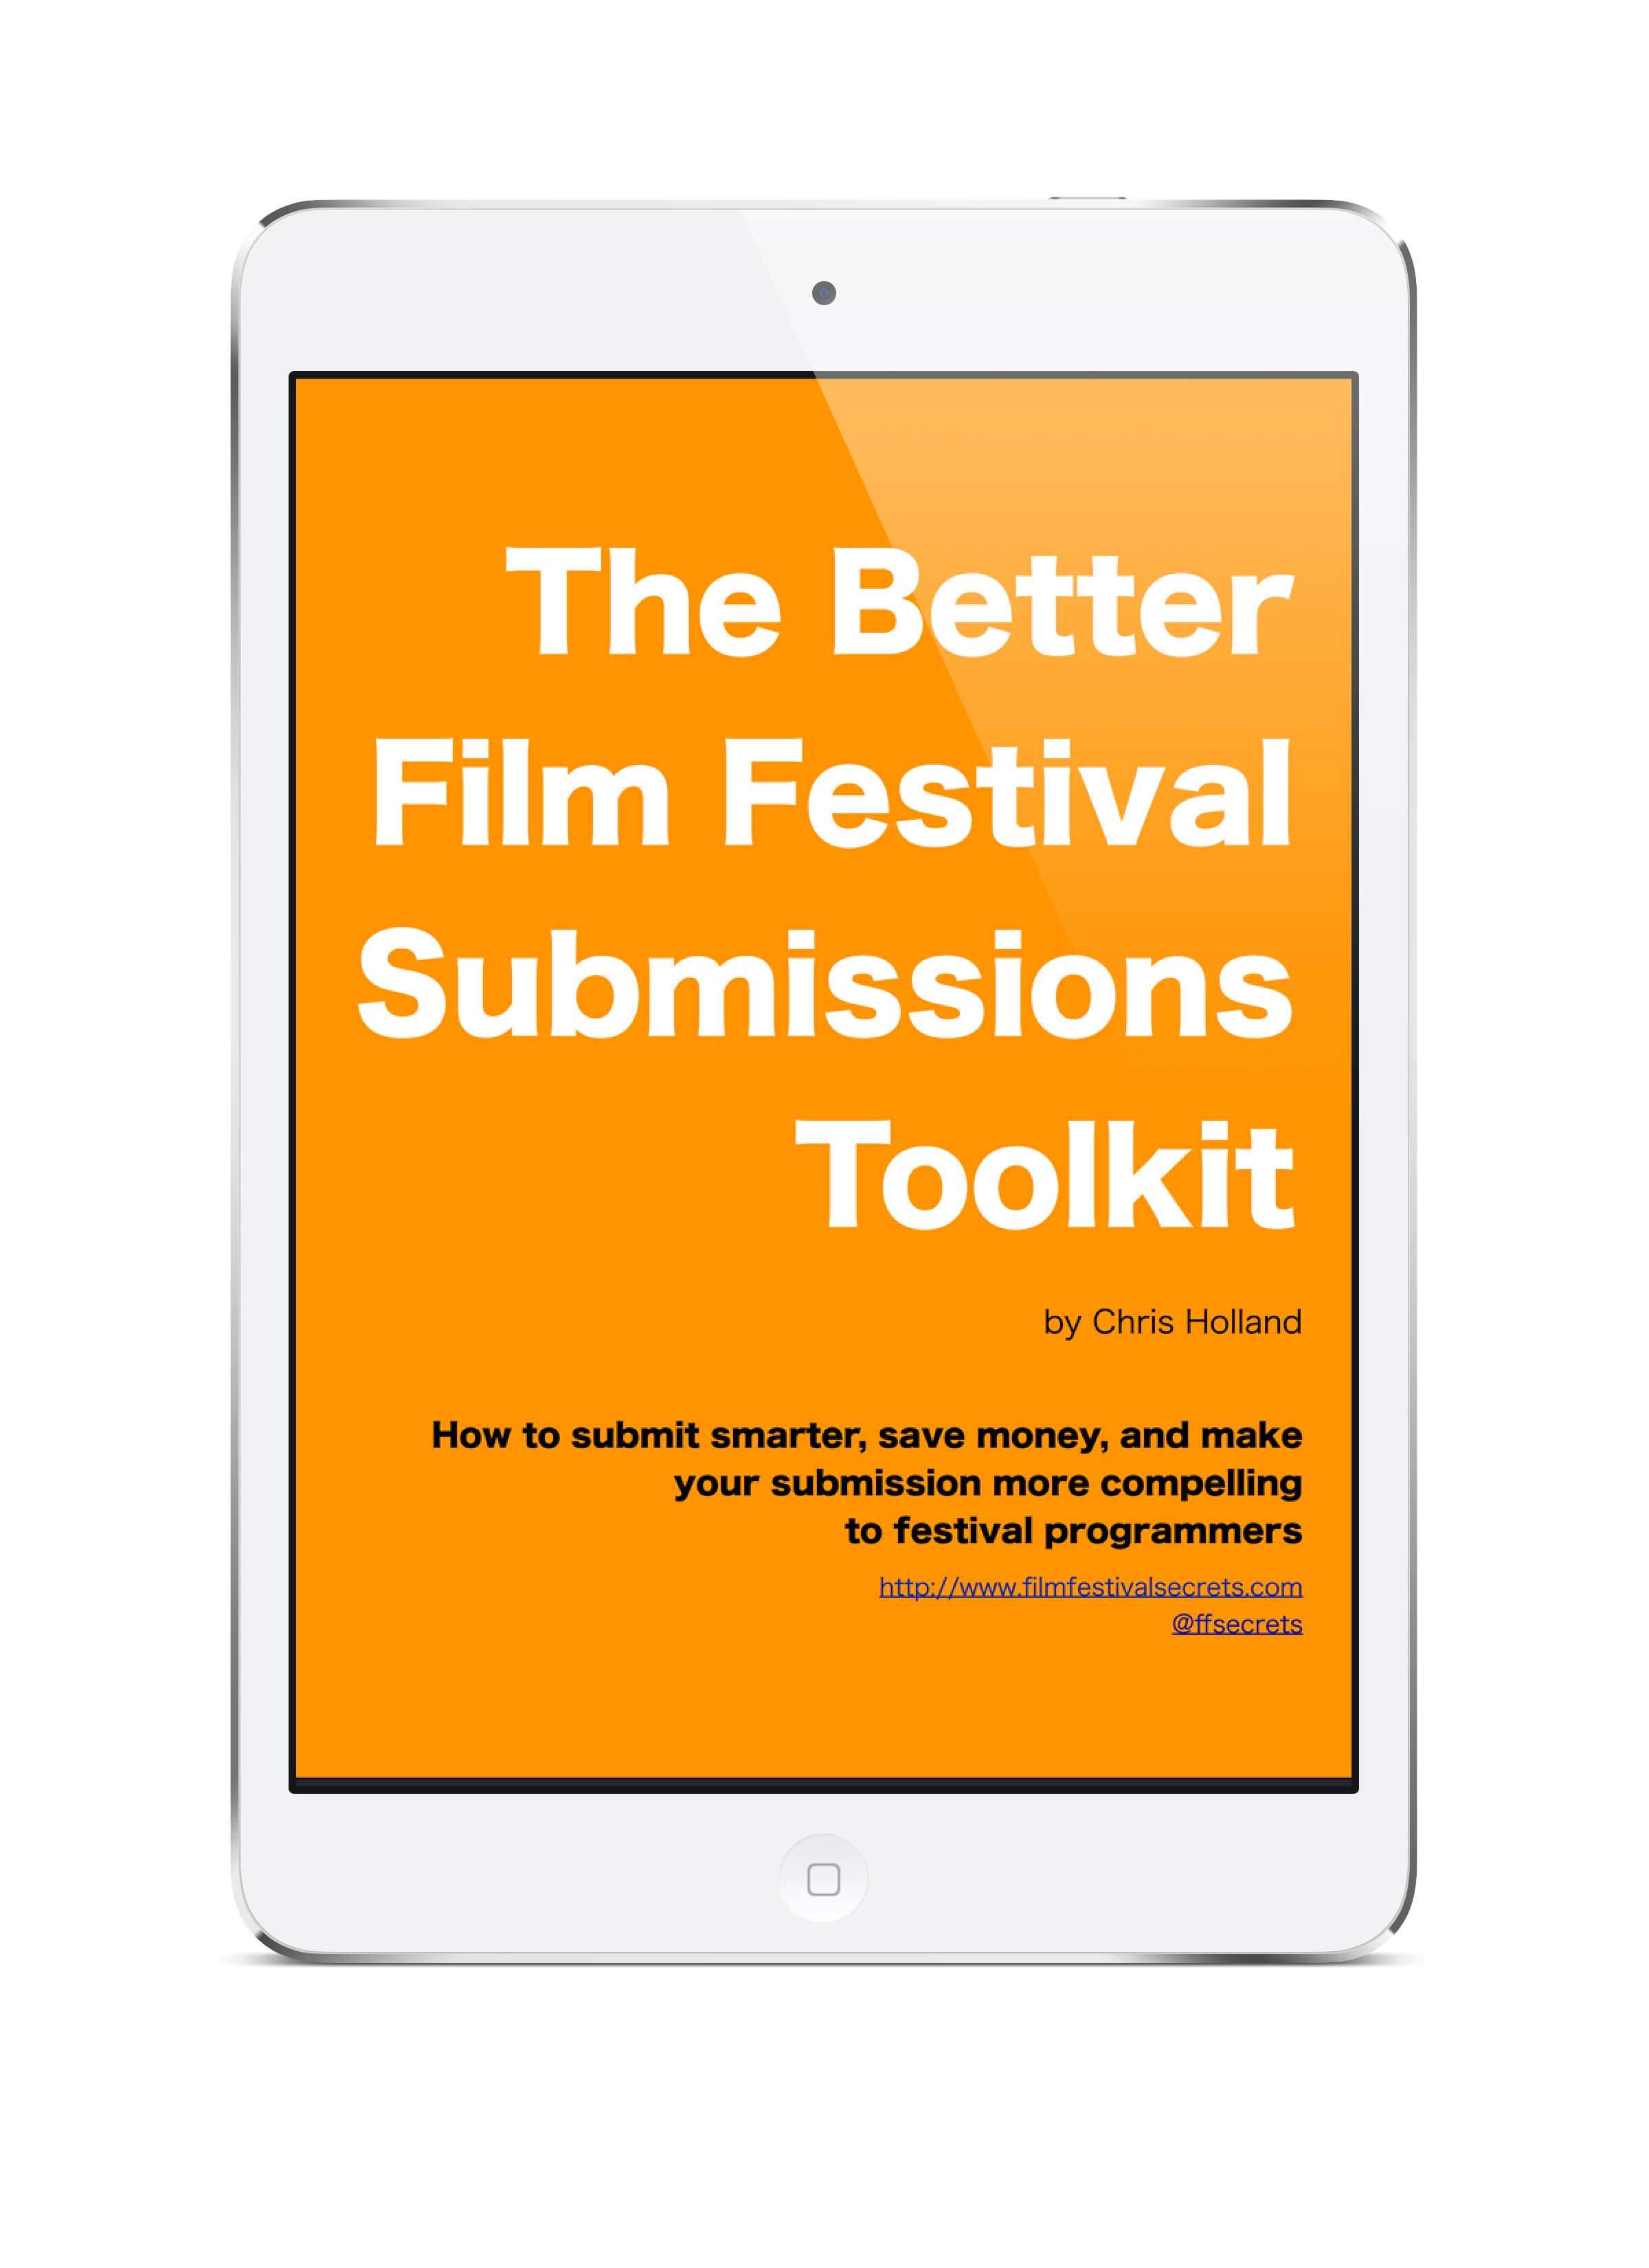 The Better Film Festival Submissions Toolkit